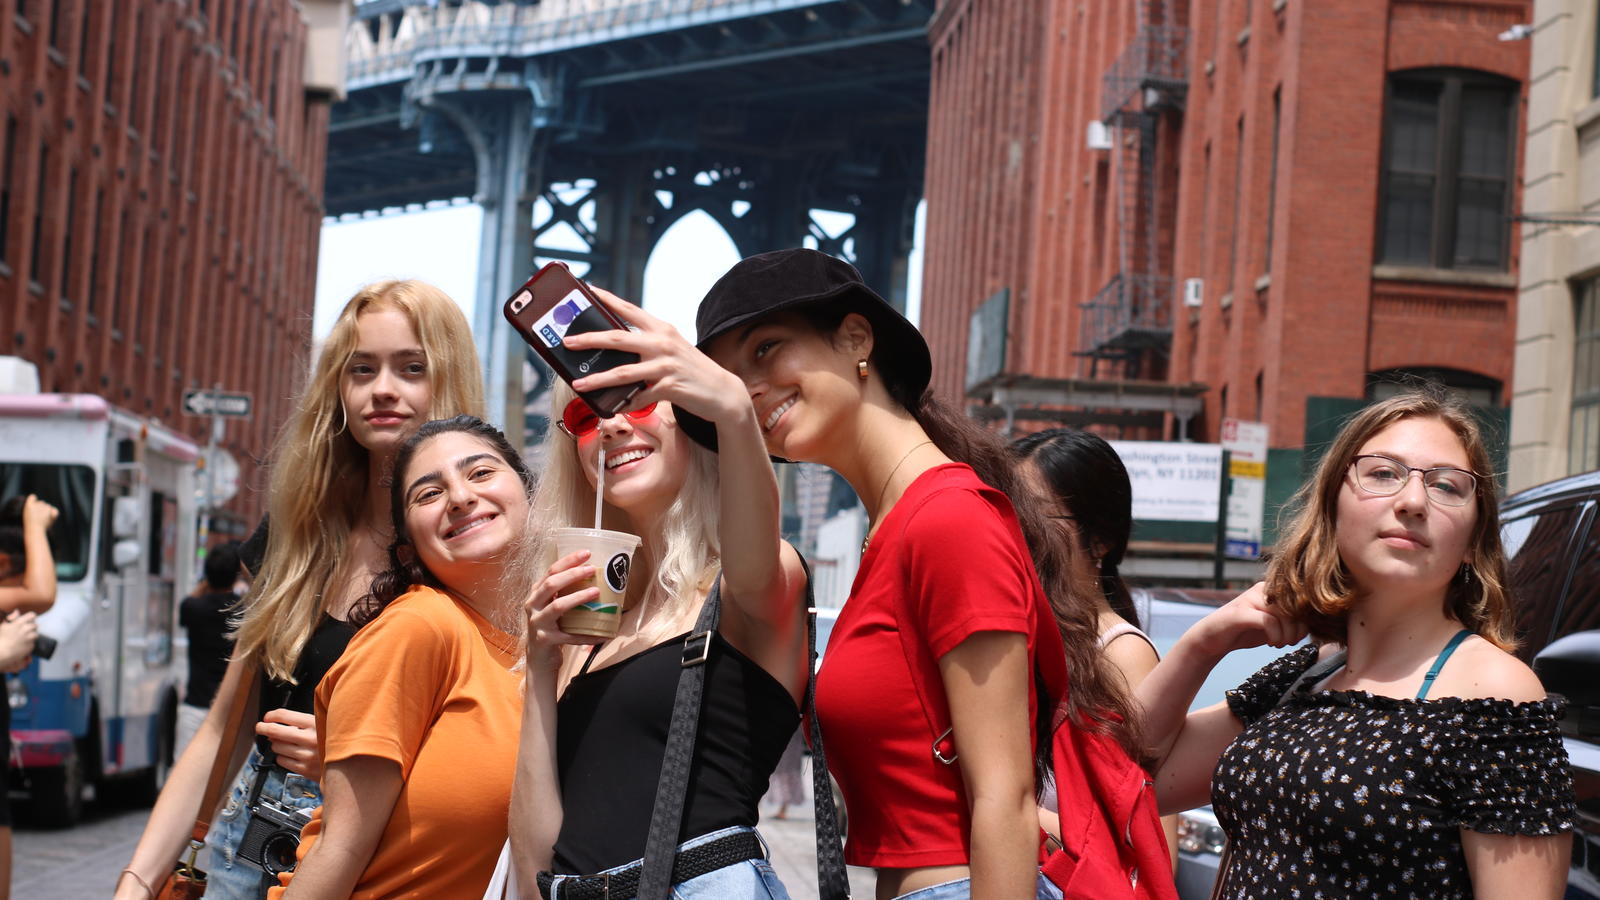 Students posing for a selfie